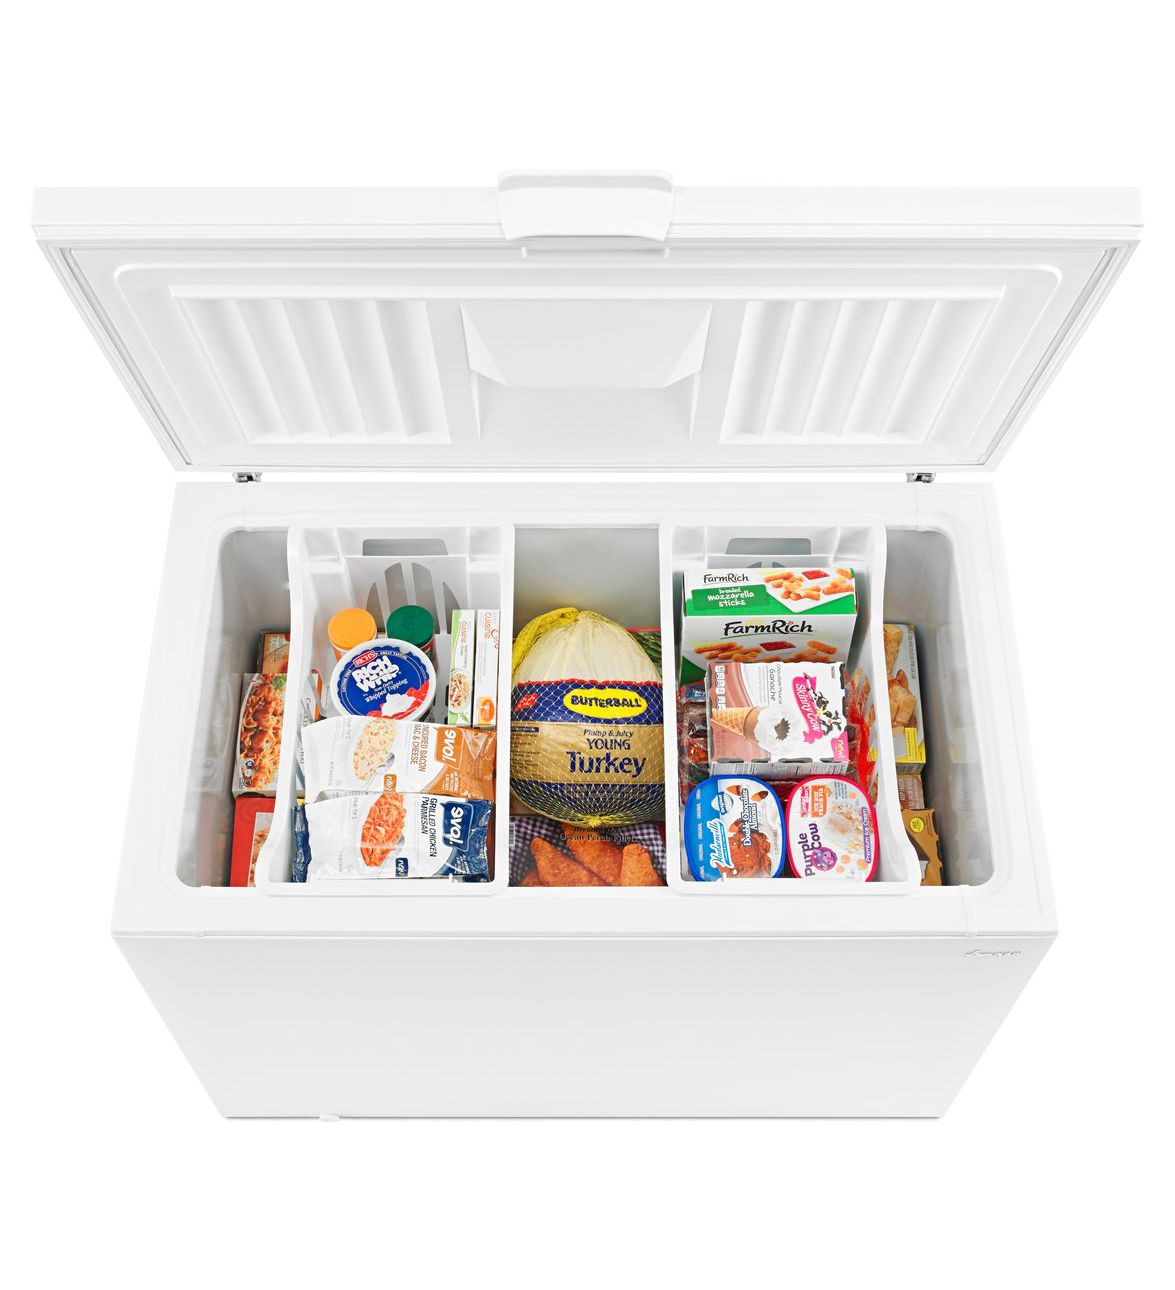 Azc31t15dw amana 15 cu ft amana chest freezer with 2 How long do things last in the freezer